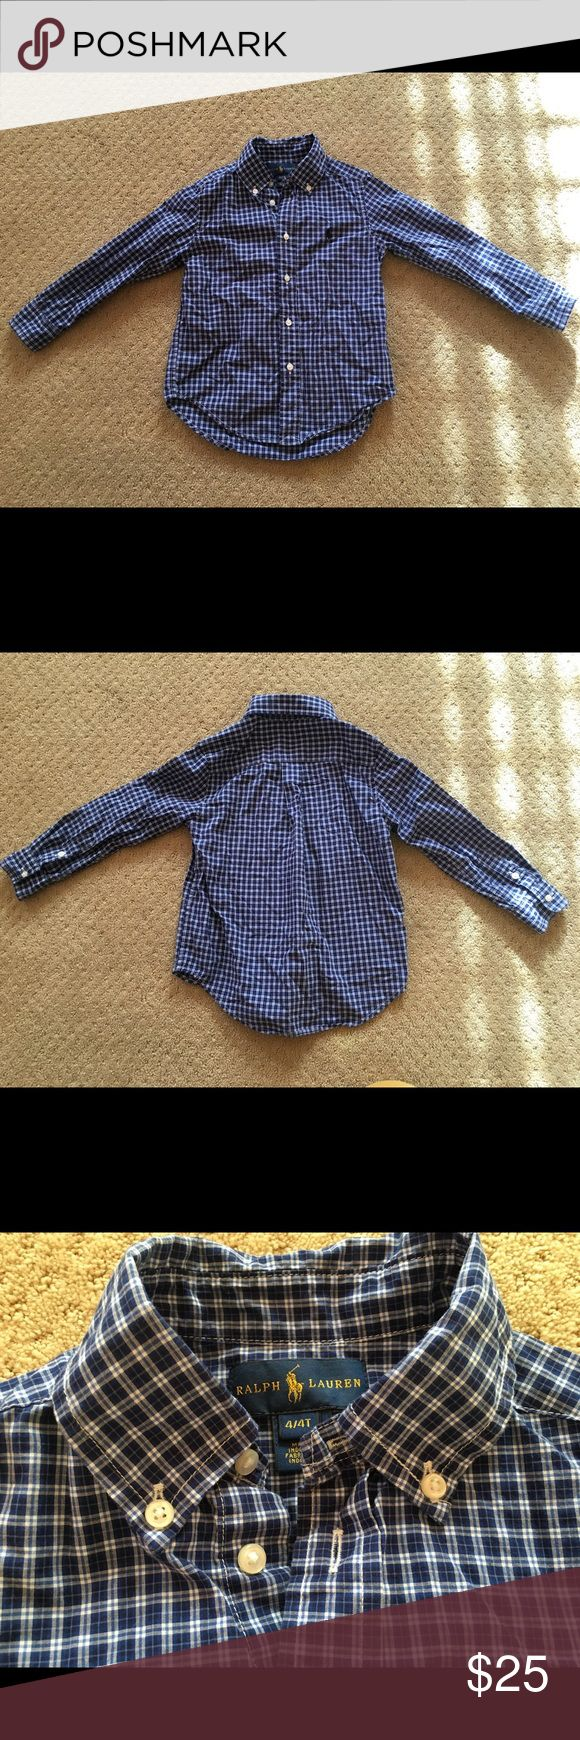 Ralph Lauren boys dress shirt Great condition Ralph Lauren Shirts & Tops Button Down Shirts